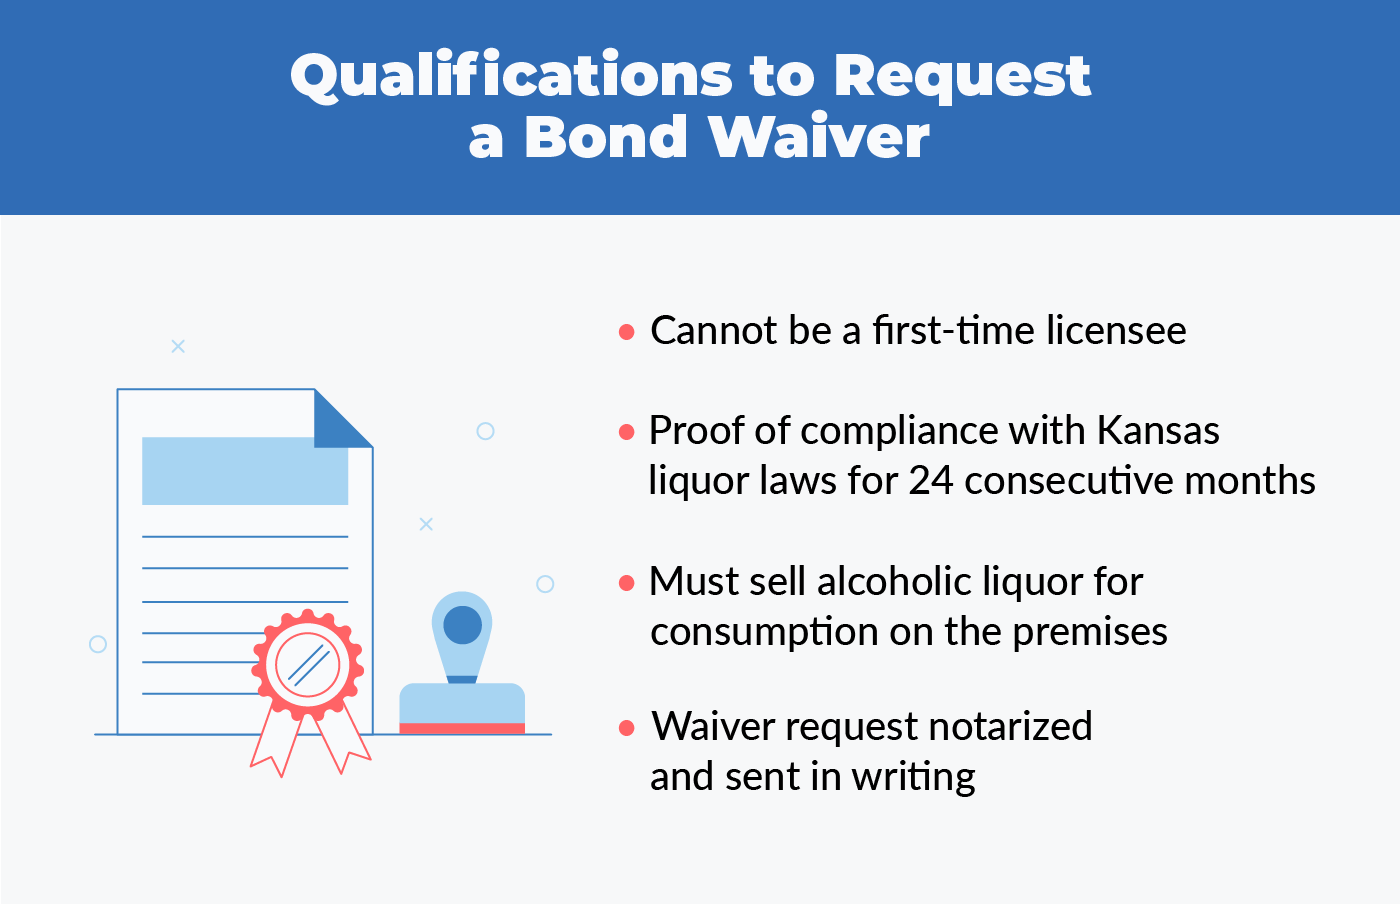 qualifications to request a bond waiver